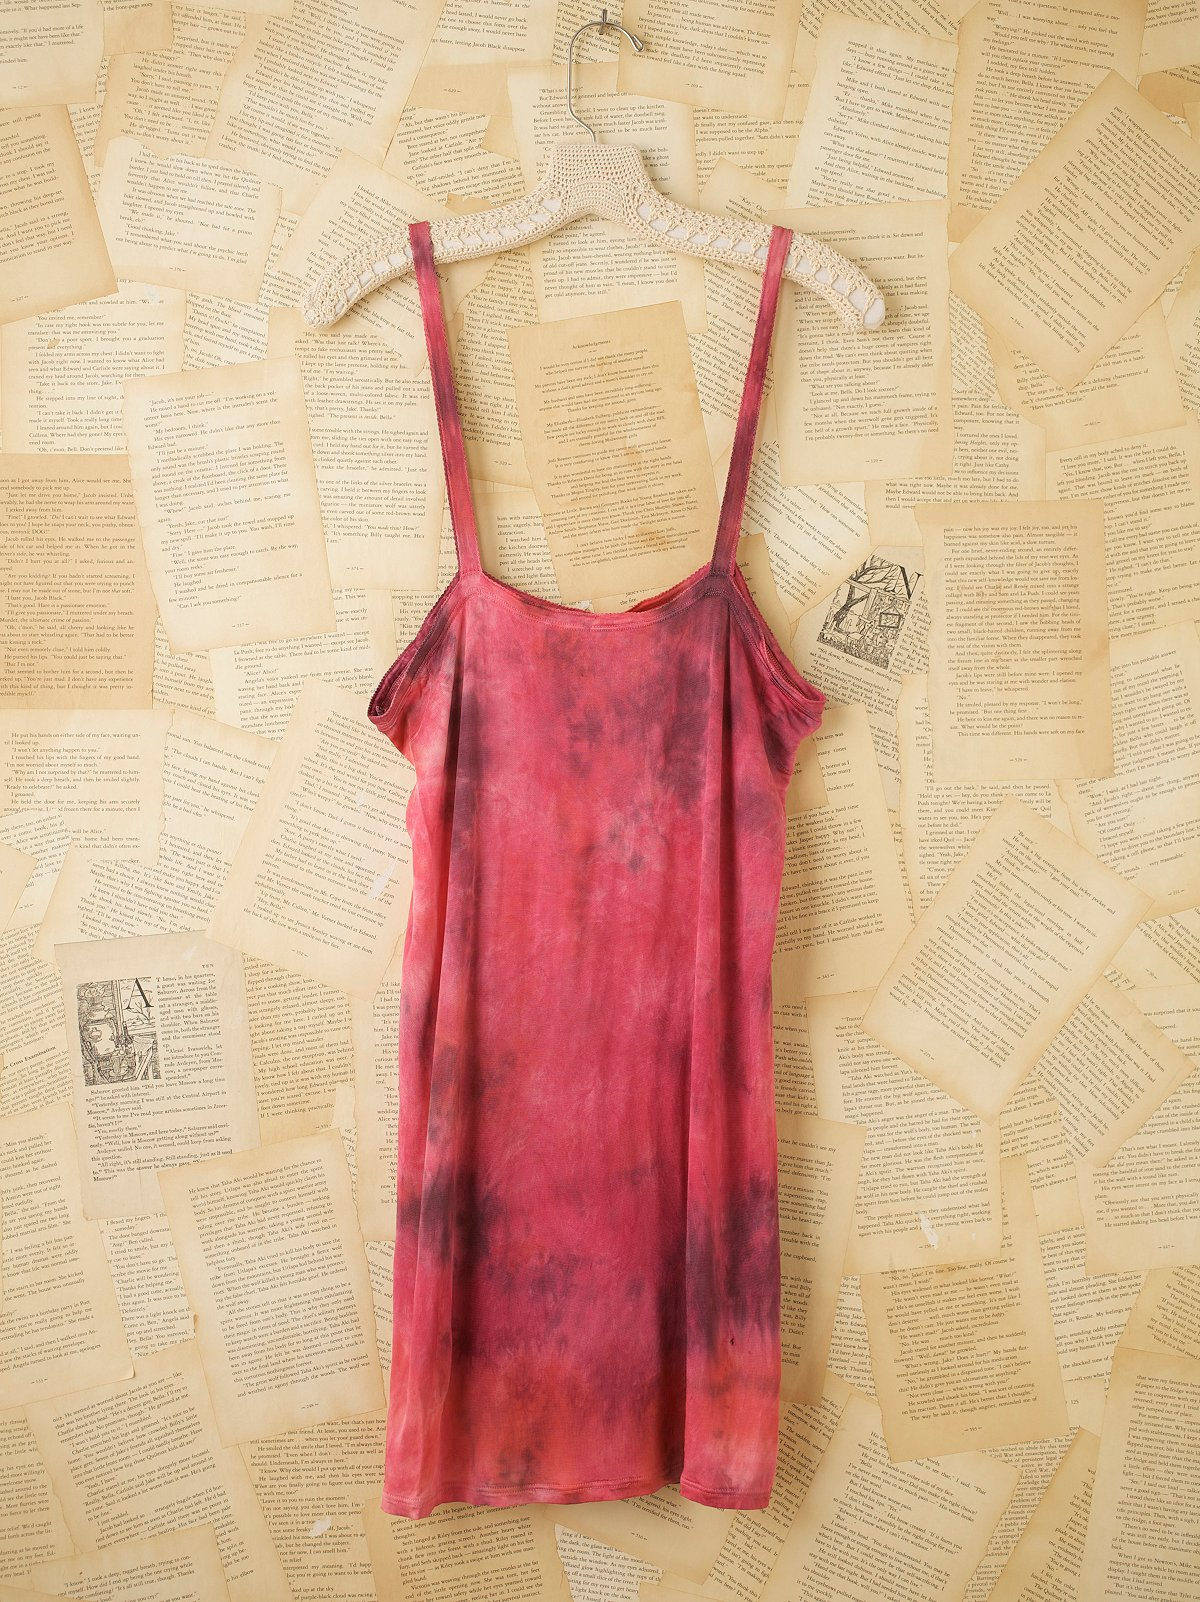 Vintage 1940s Hand Dyed Rayon Knit Tank Top